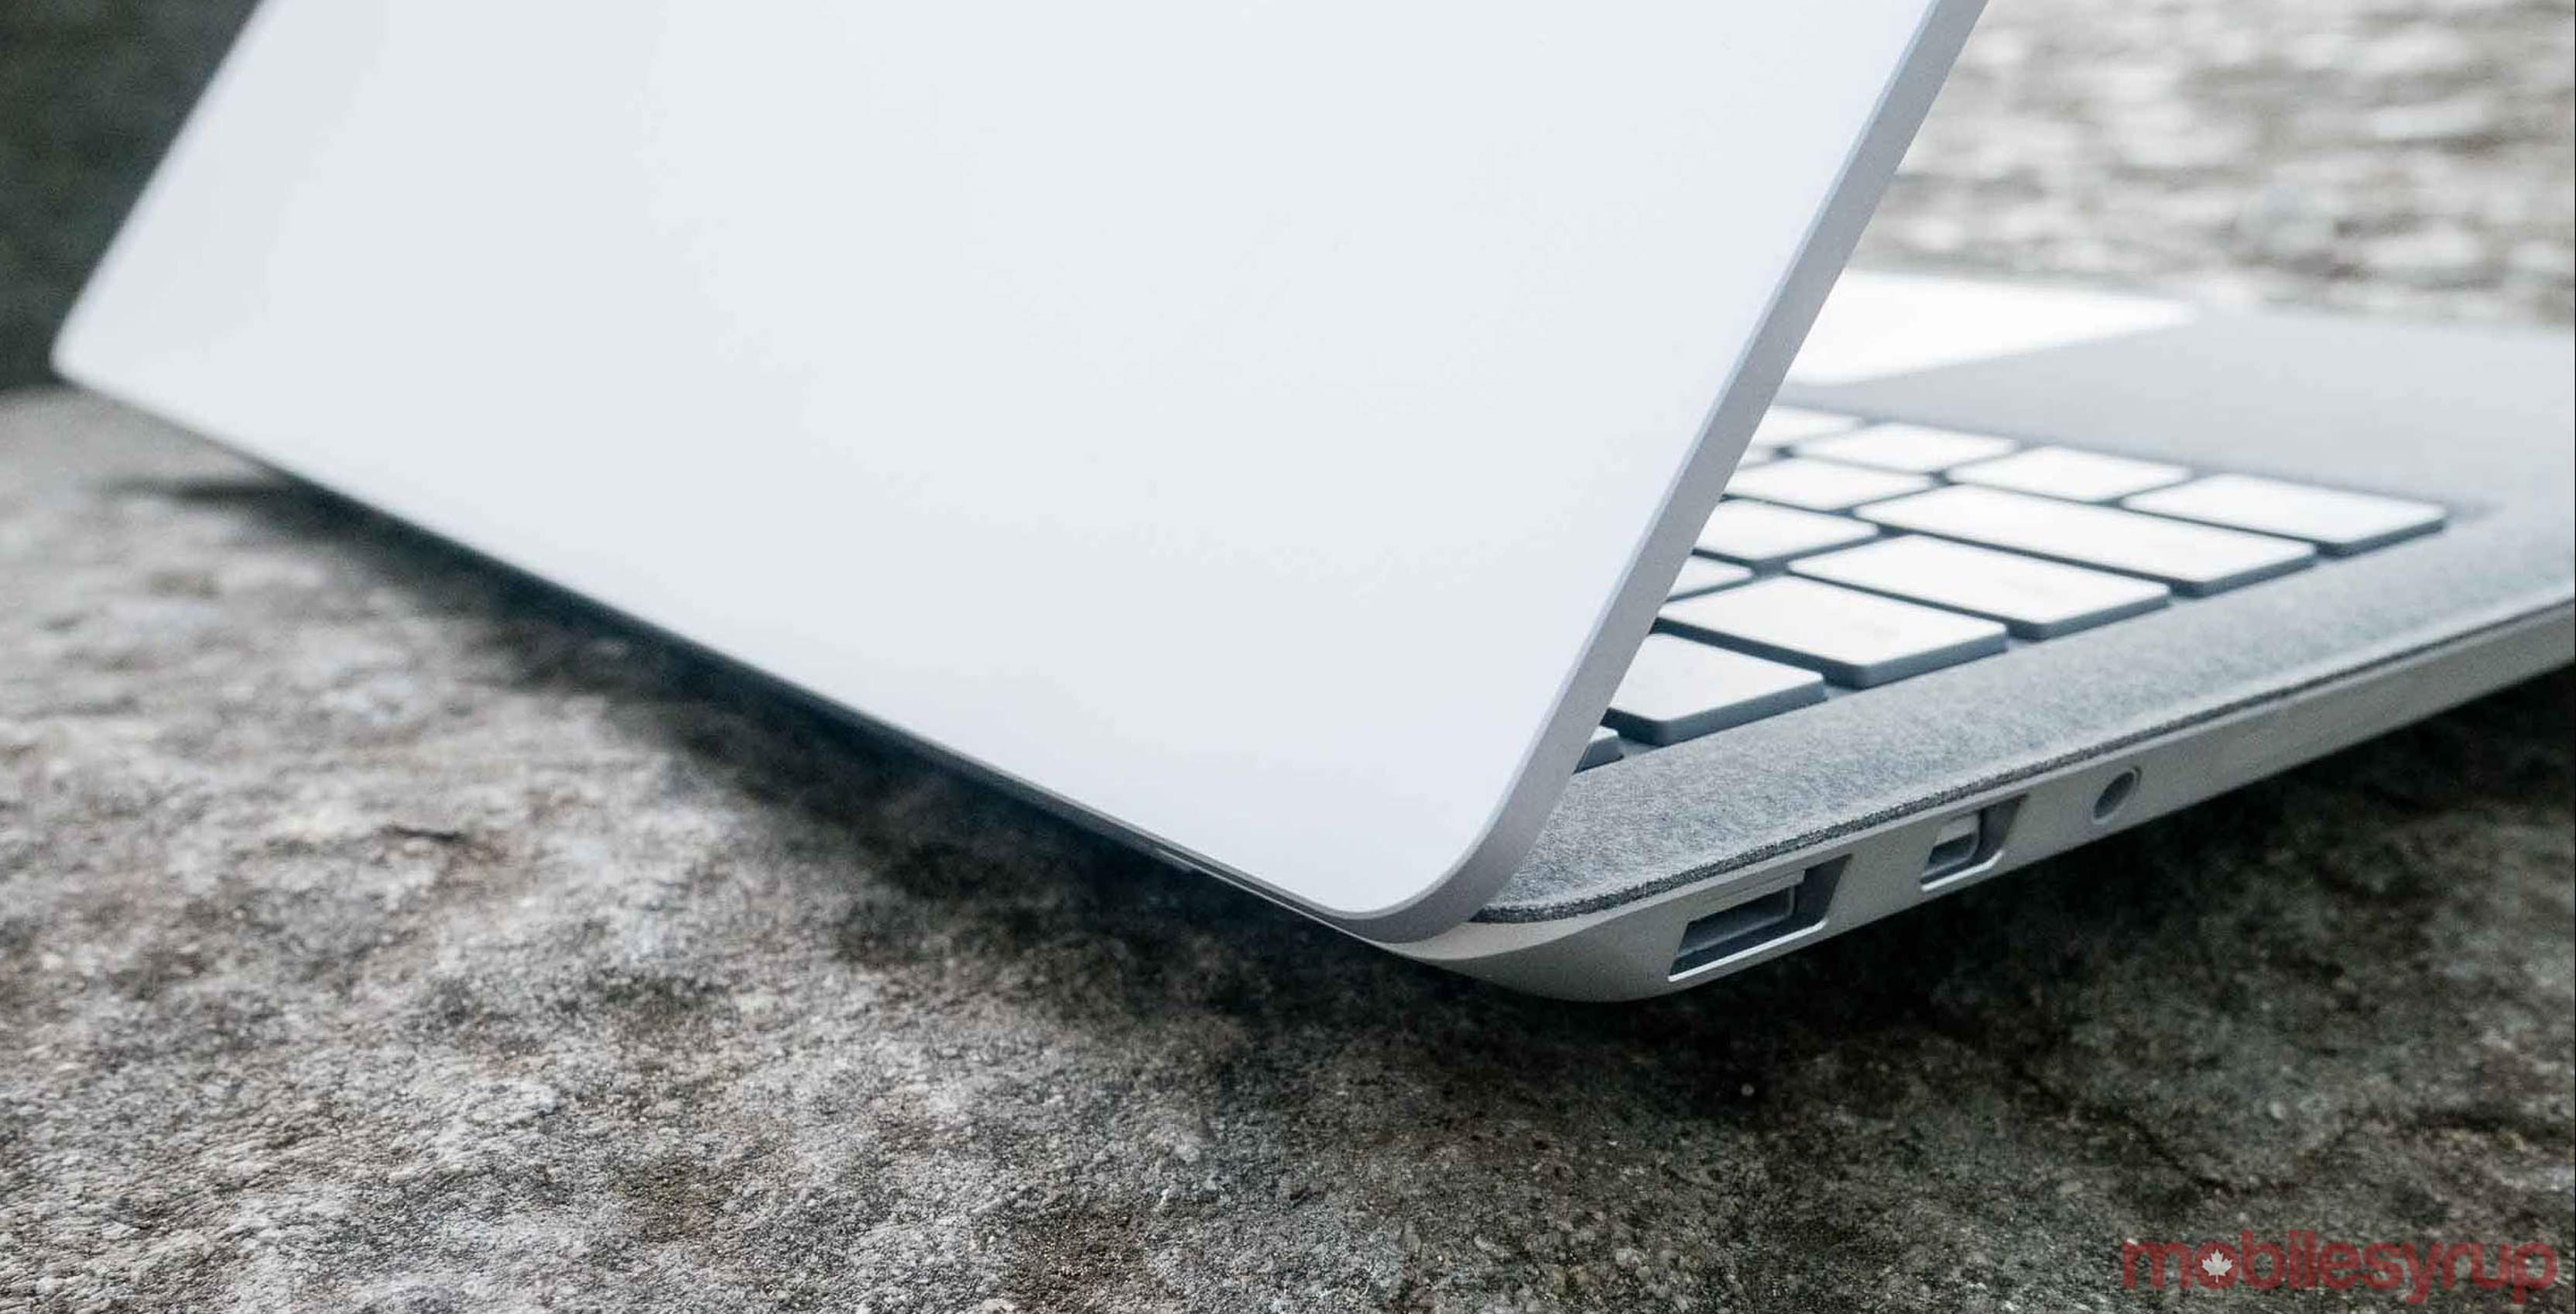 Photo of the Surface Laptop's hinge mechanism